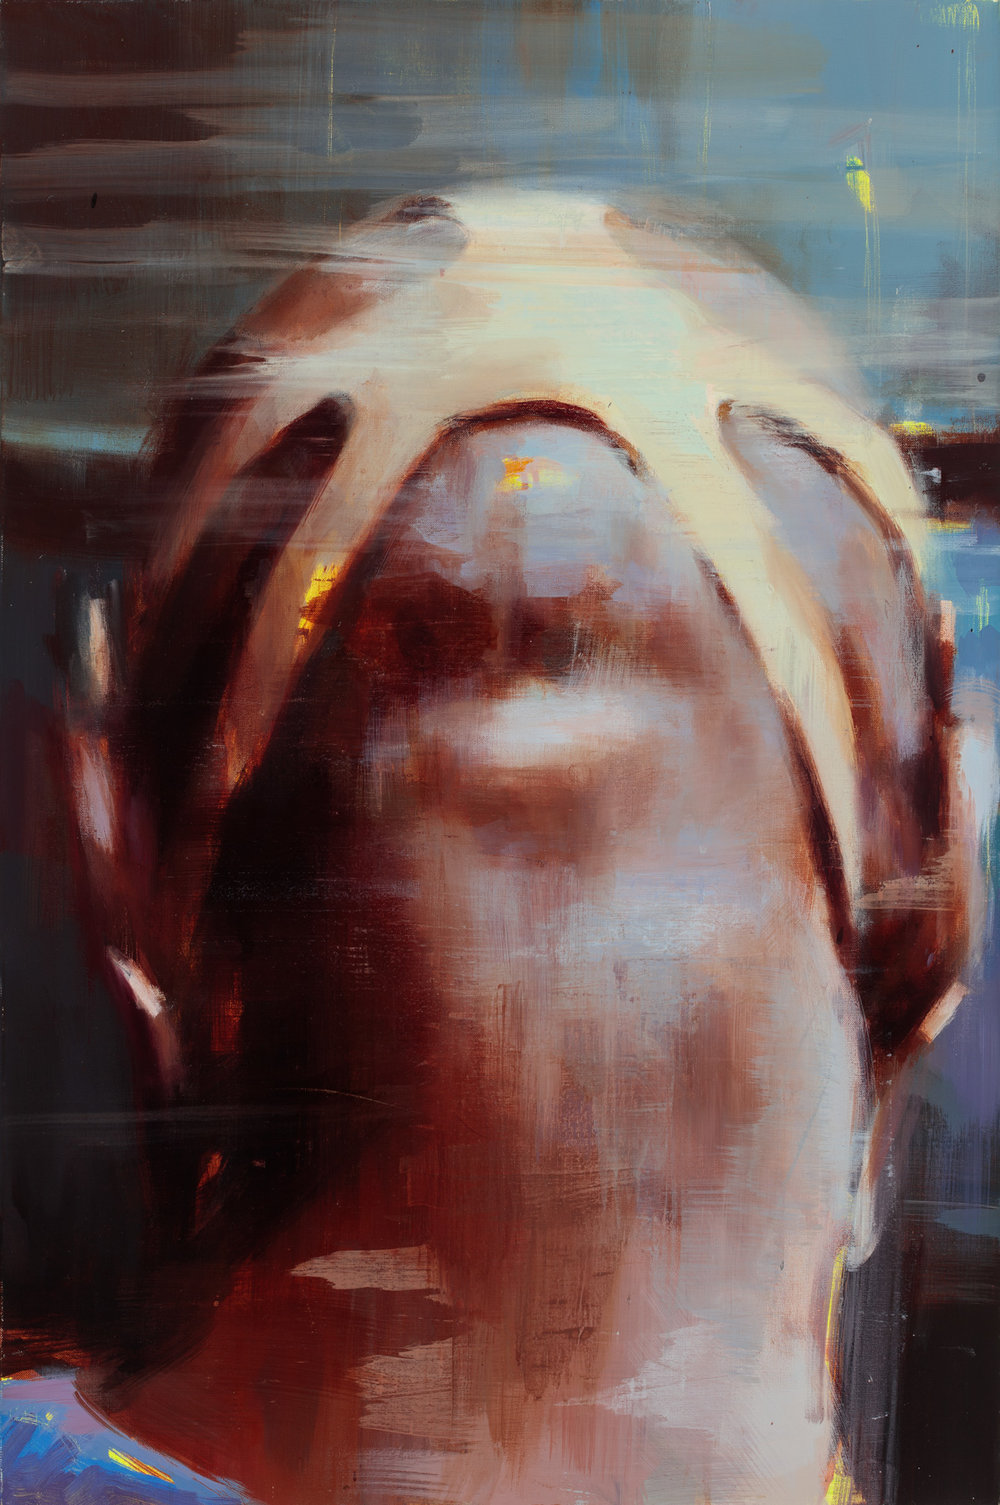 """ Back of a Protester's Head""  2013,  36"" x 24"" (91 x 60 cm), oil on linen."